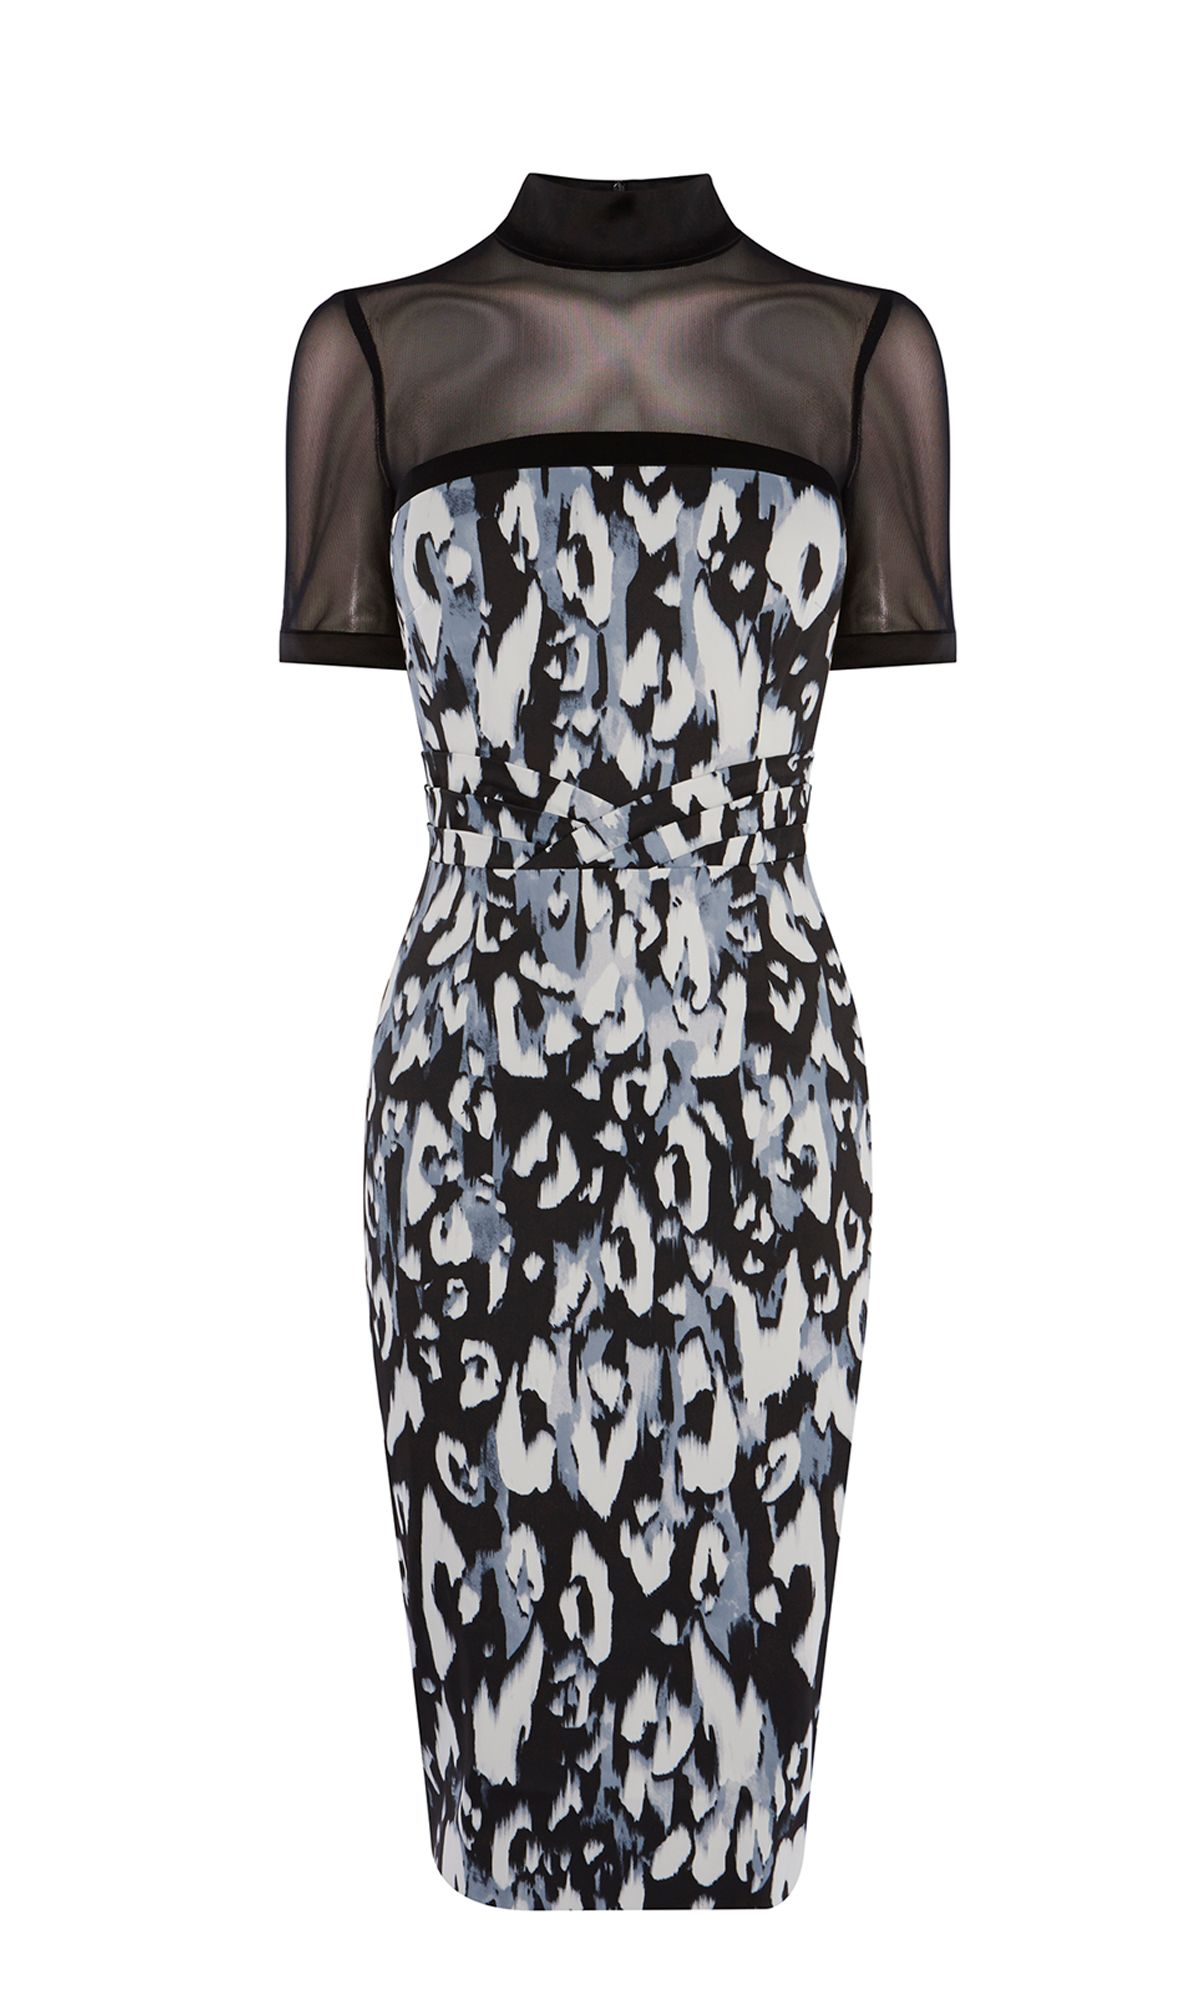 Karen Millen Leopard Print Pencil Dress, Multi-Coloured